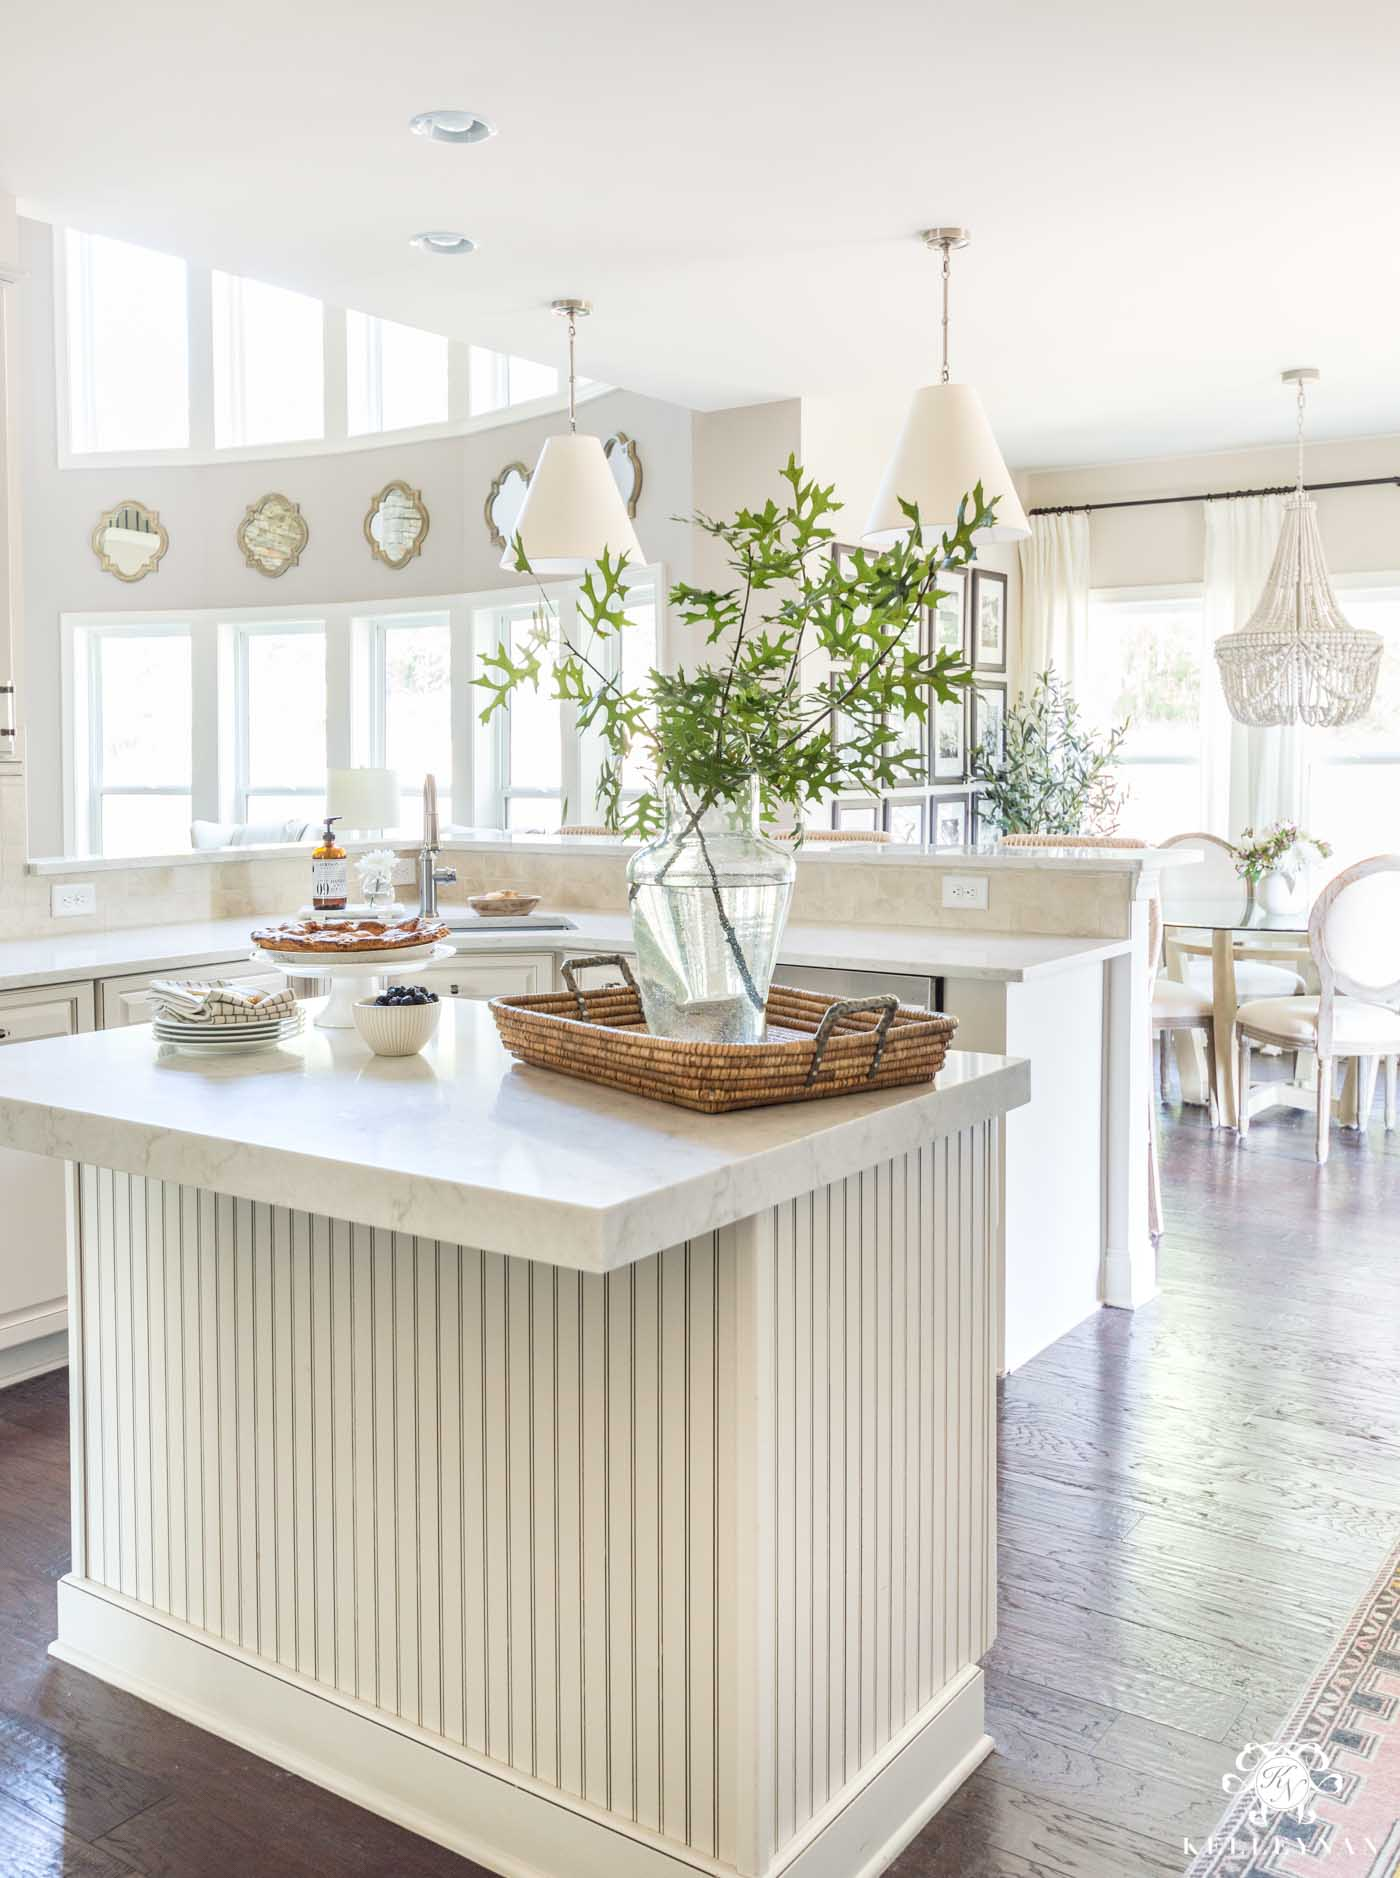 Styling a kitchen island and other modern kitchen updates